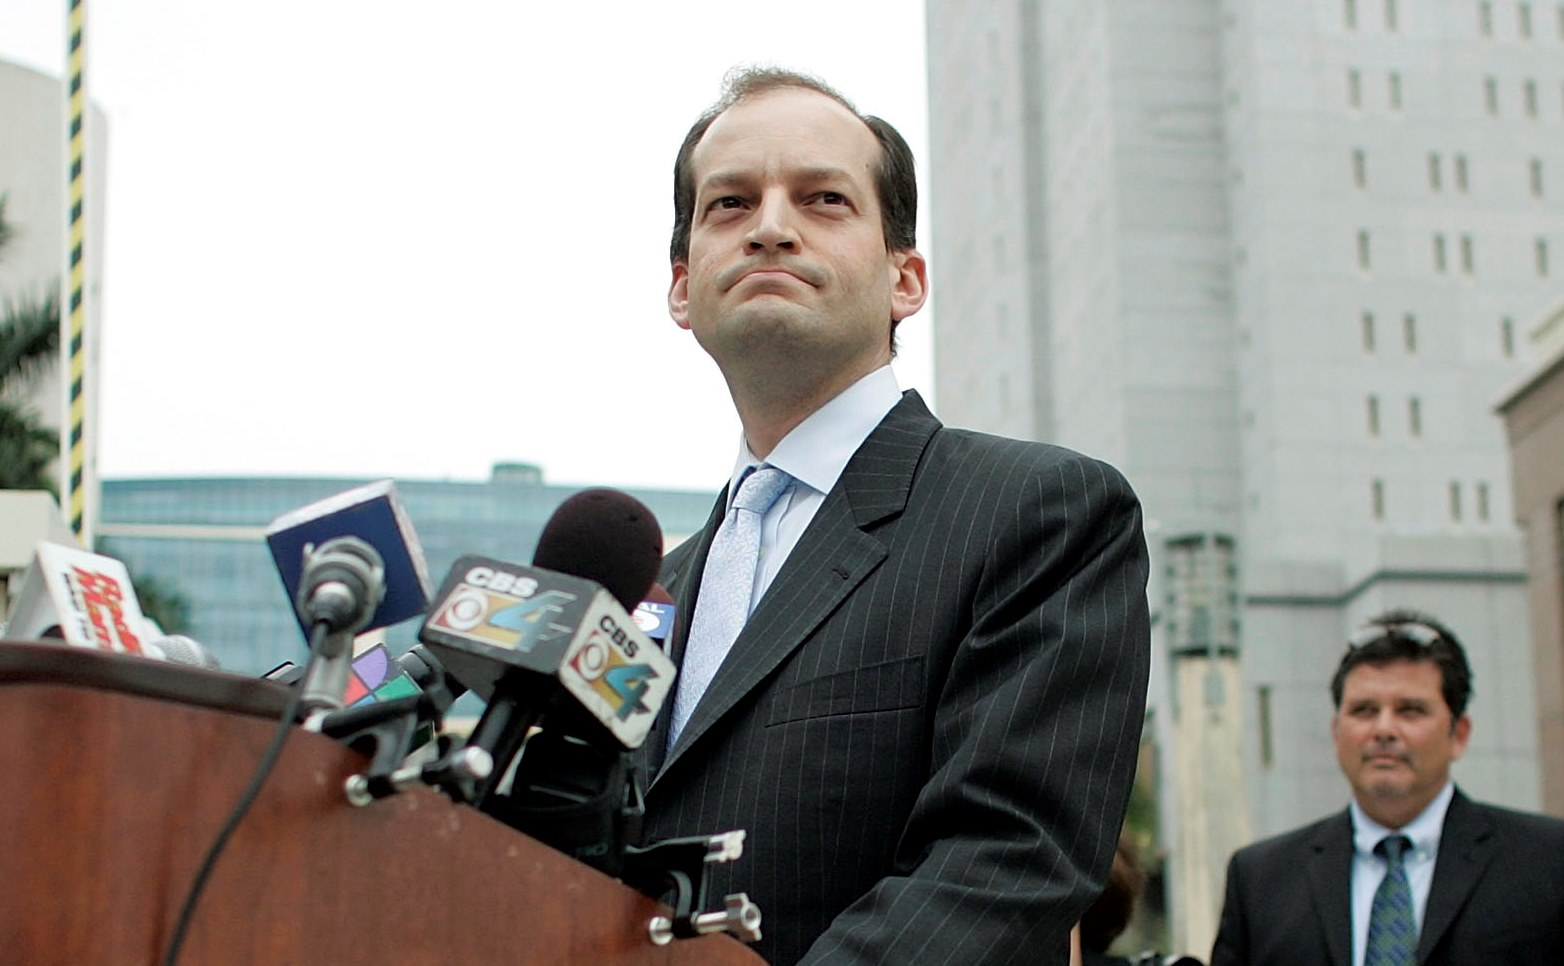 President Trump has nominated Alexander Acosta as his choice for Labor Secretary. (Getty Images)